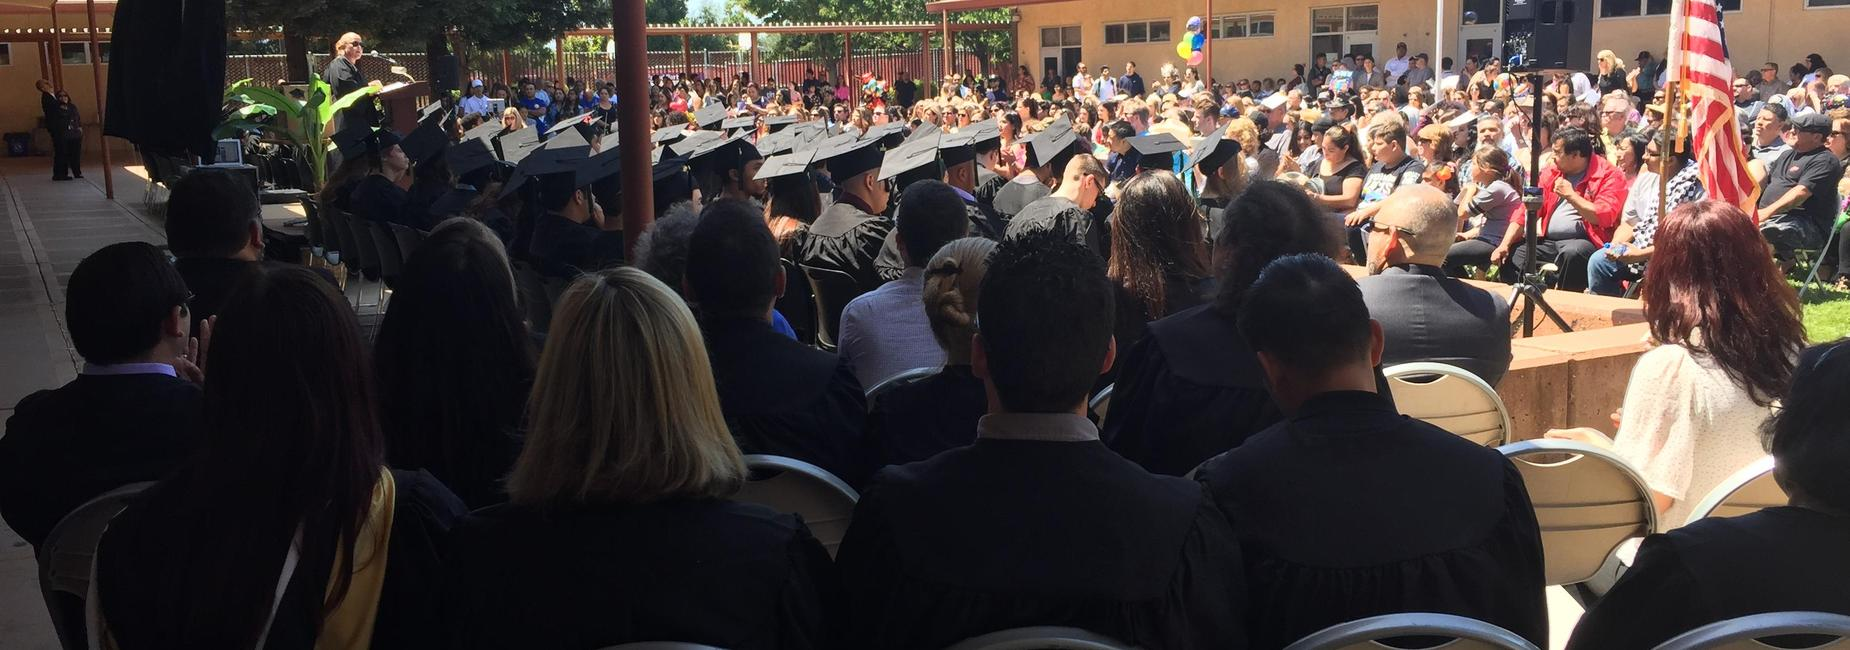 photo of boynton high school graduation